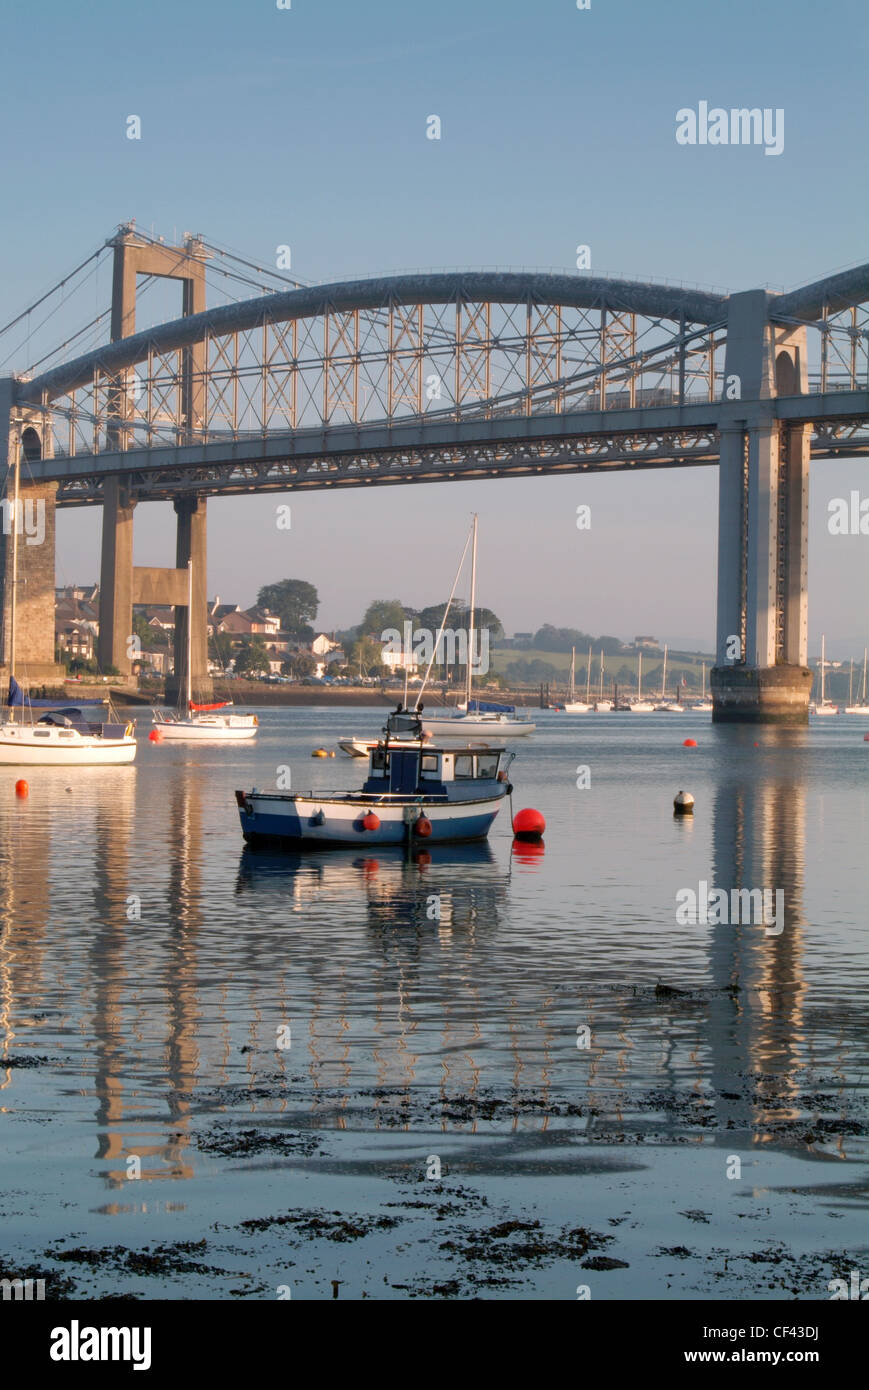 Fishing trawler on the River Tamar at dawn with the Brunel Bridge behind. Stock Photo